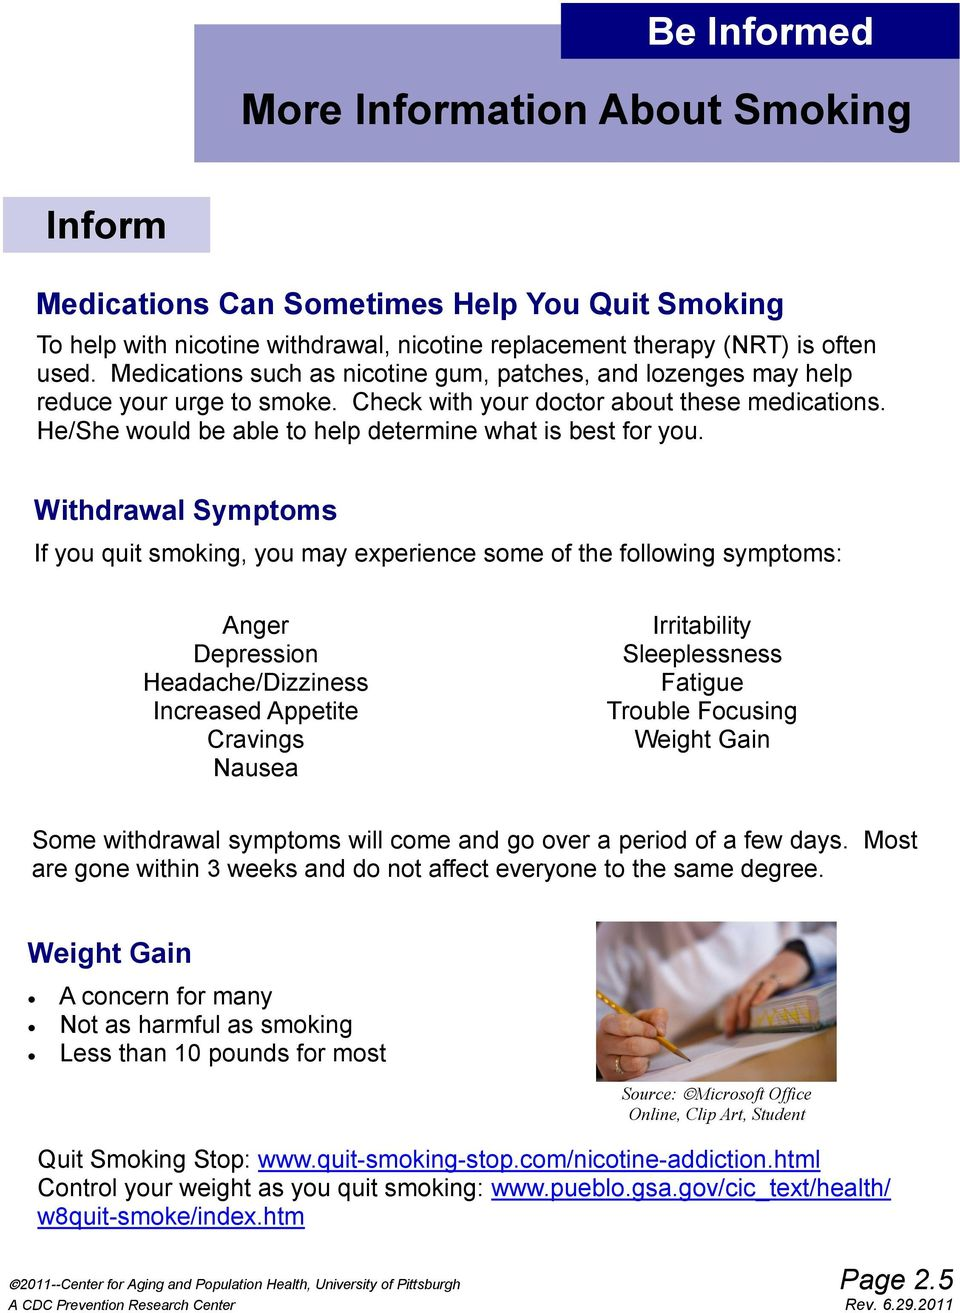 Withdrawal Symptoms If you quit smoking, you may experience some of the following symptoms: Anger Depression Headache/Dizziness Increased Appetite Cravings Nausea Irritability Sleeplessness Fatigue